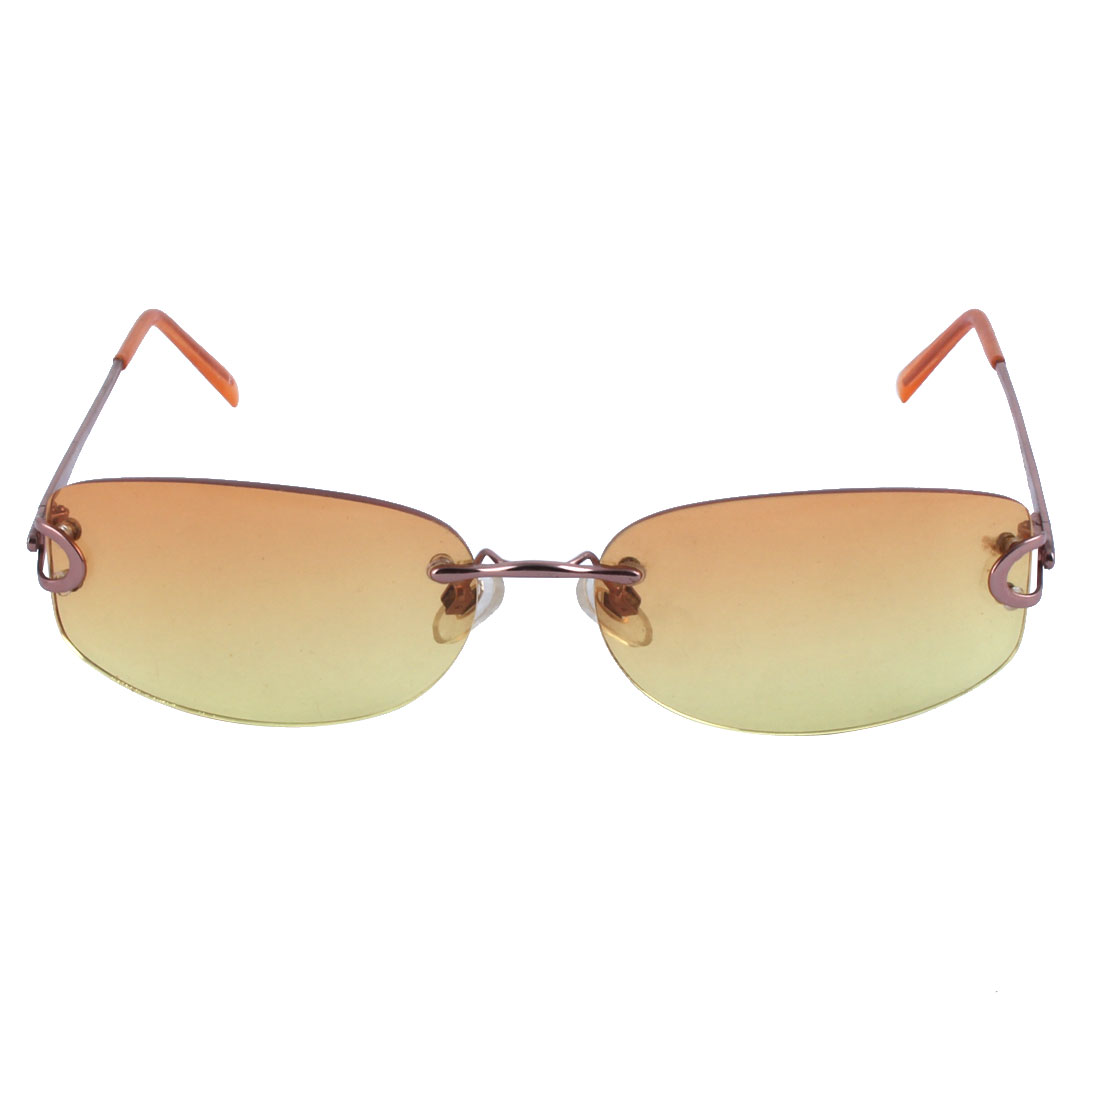 Yellow Brown Lens Plastic Coated Metal Arm Lady's Sunglasses